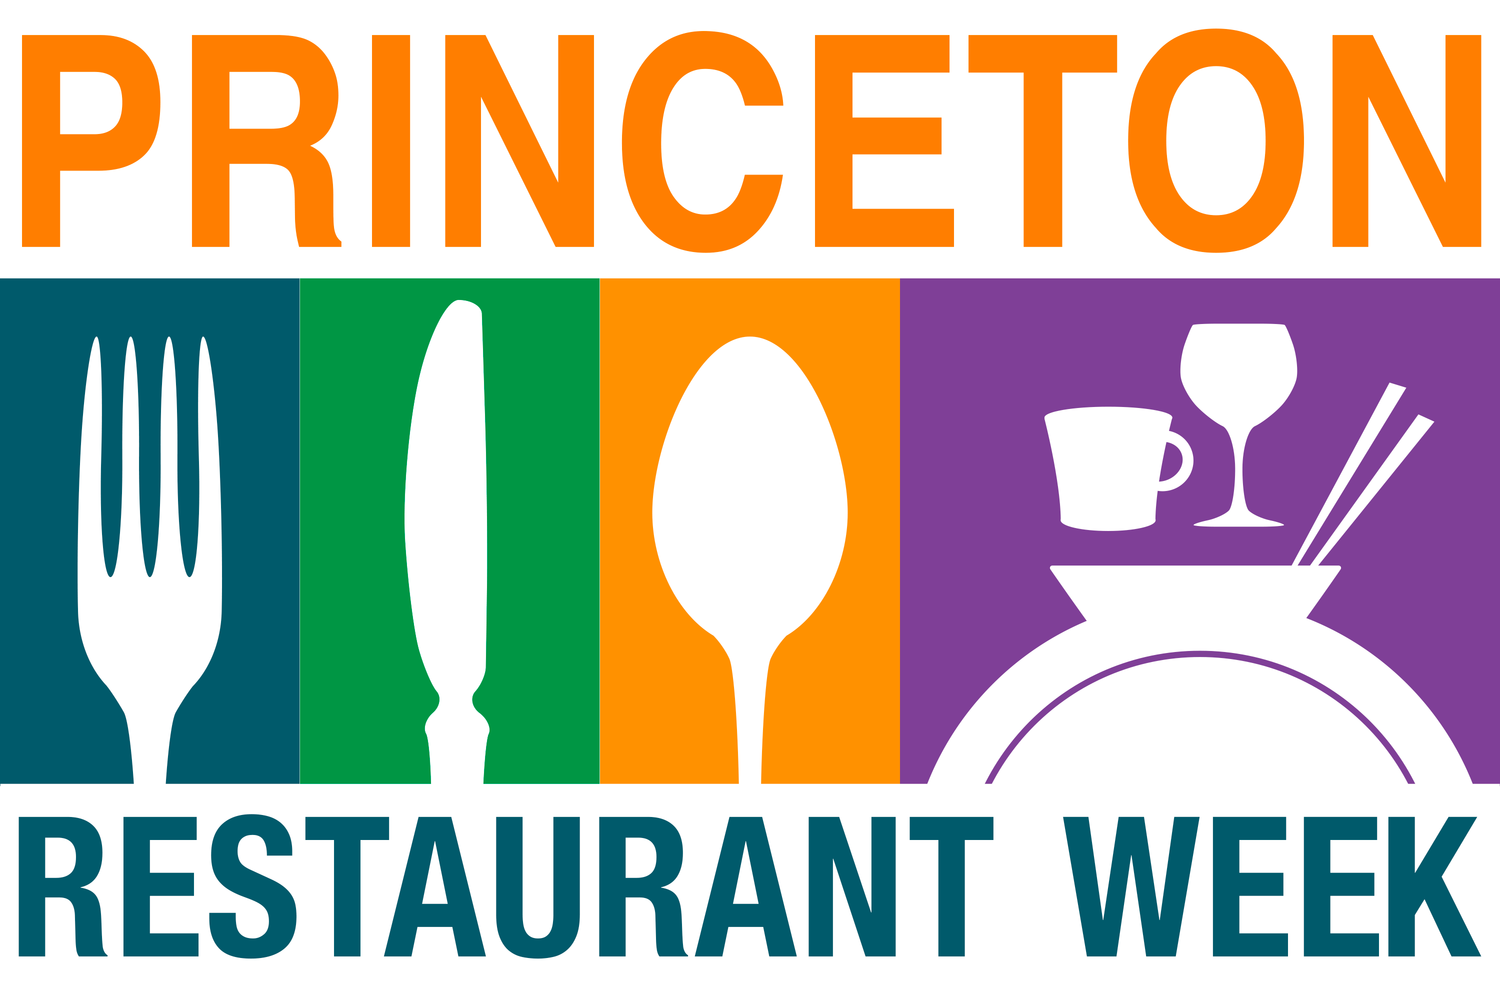 Princeton Restaurant Week | March 10-17, 2019